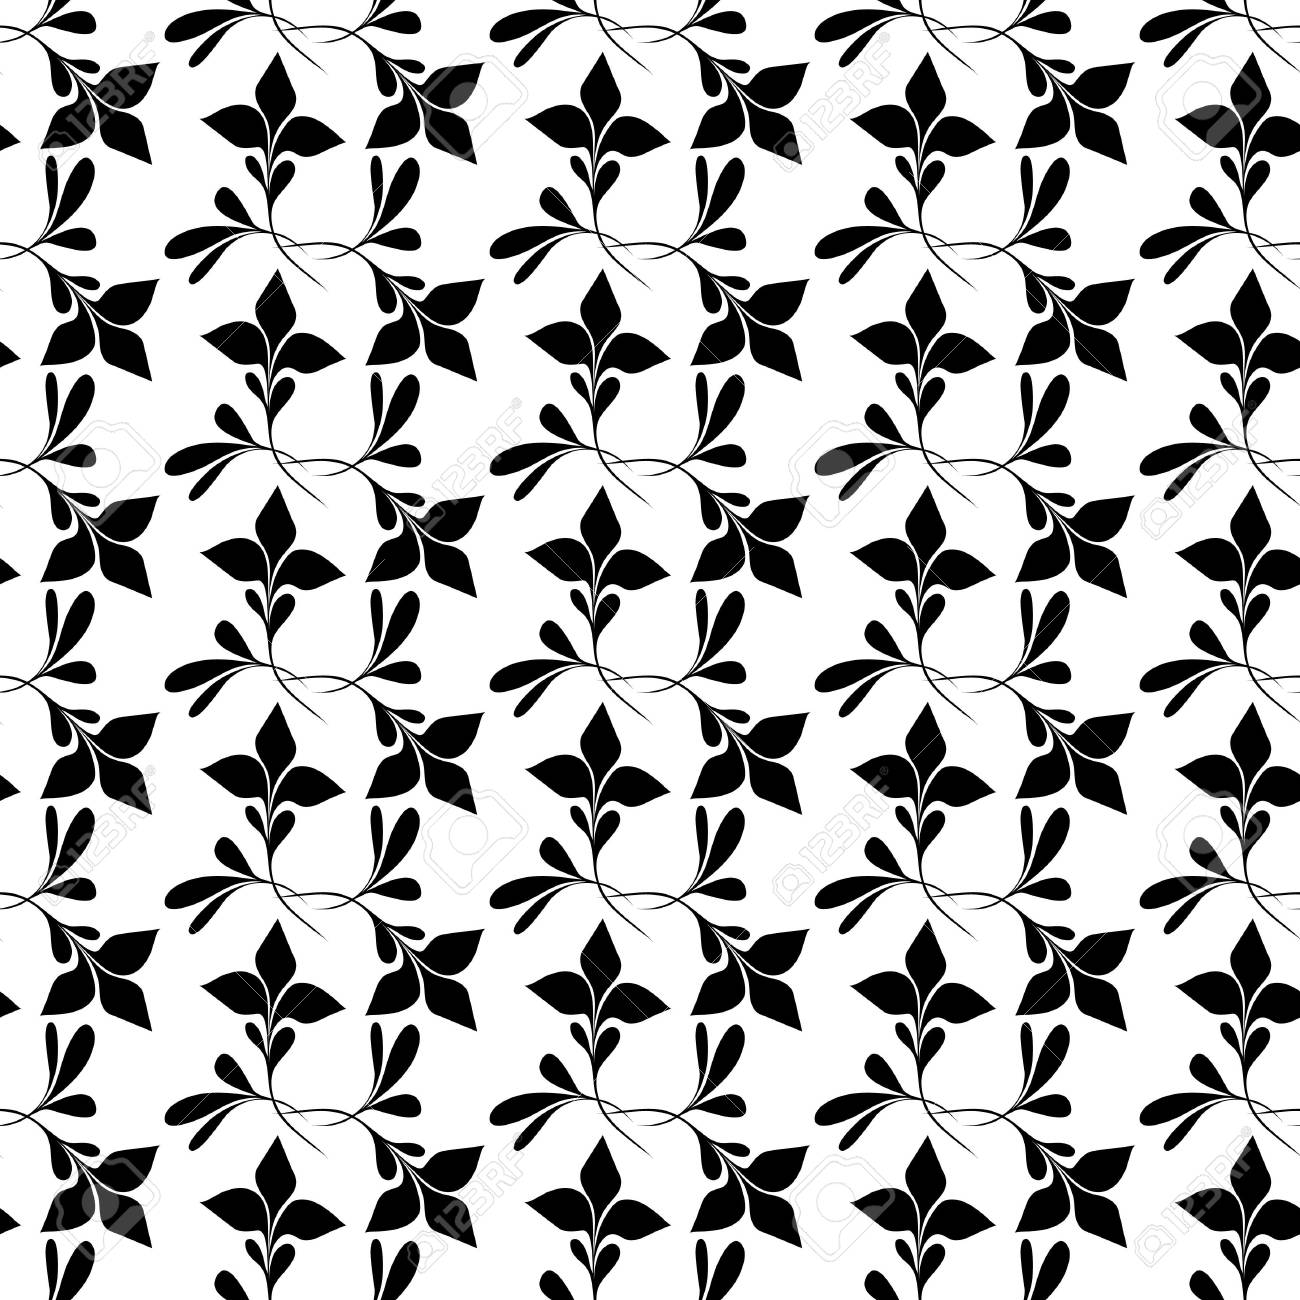 Seamless black and white floral wallpaper Stock Vector - 6684843